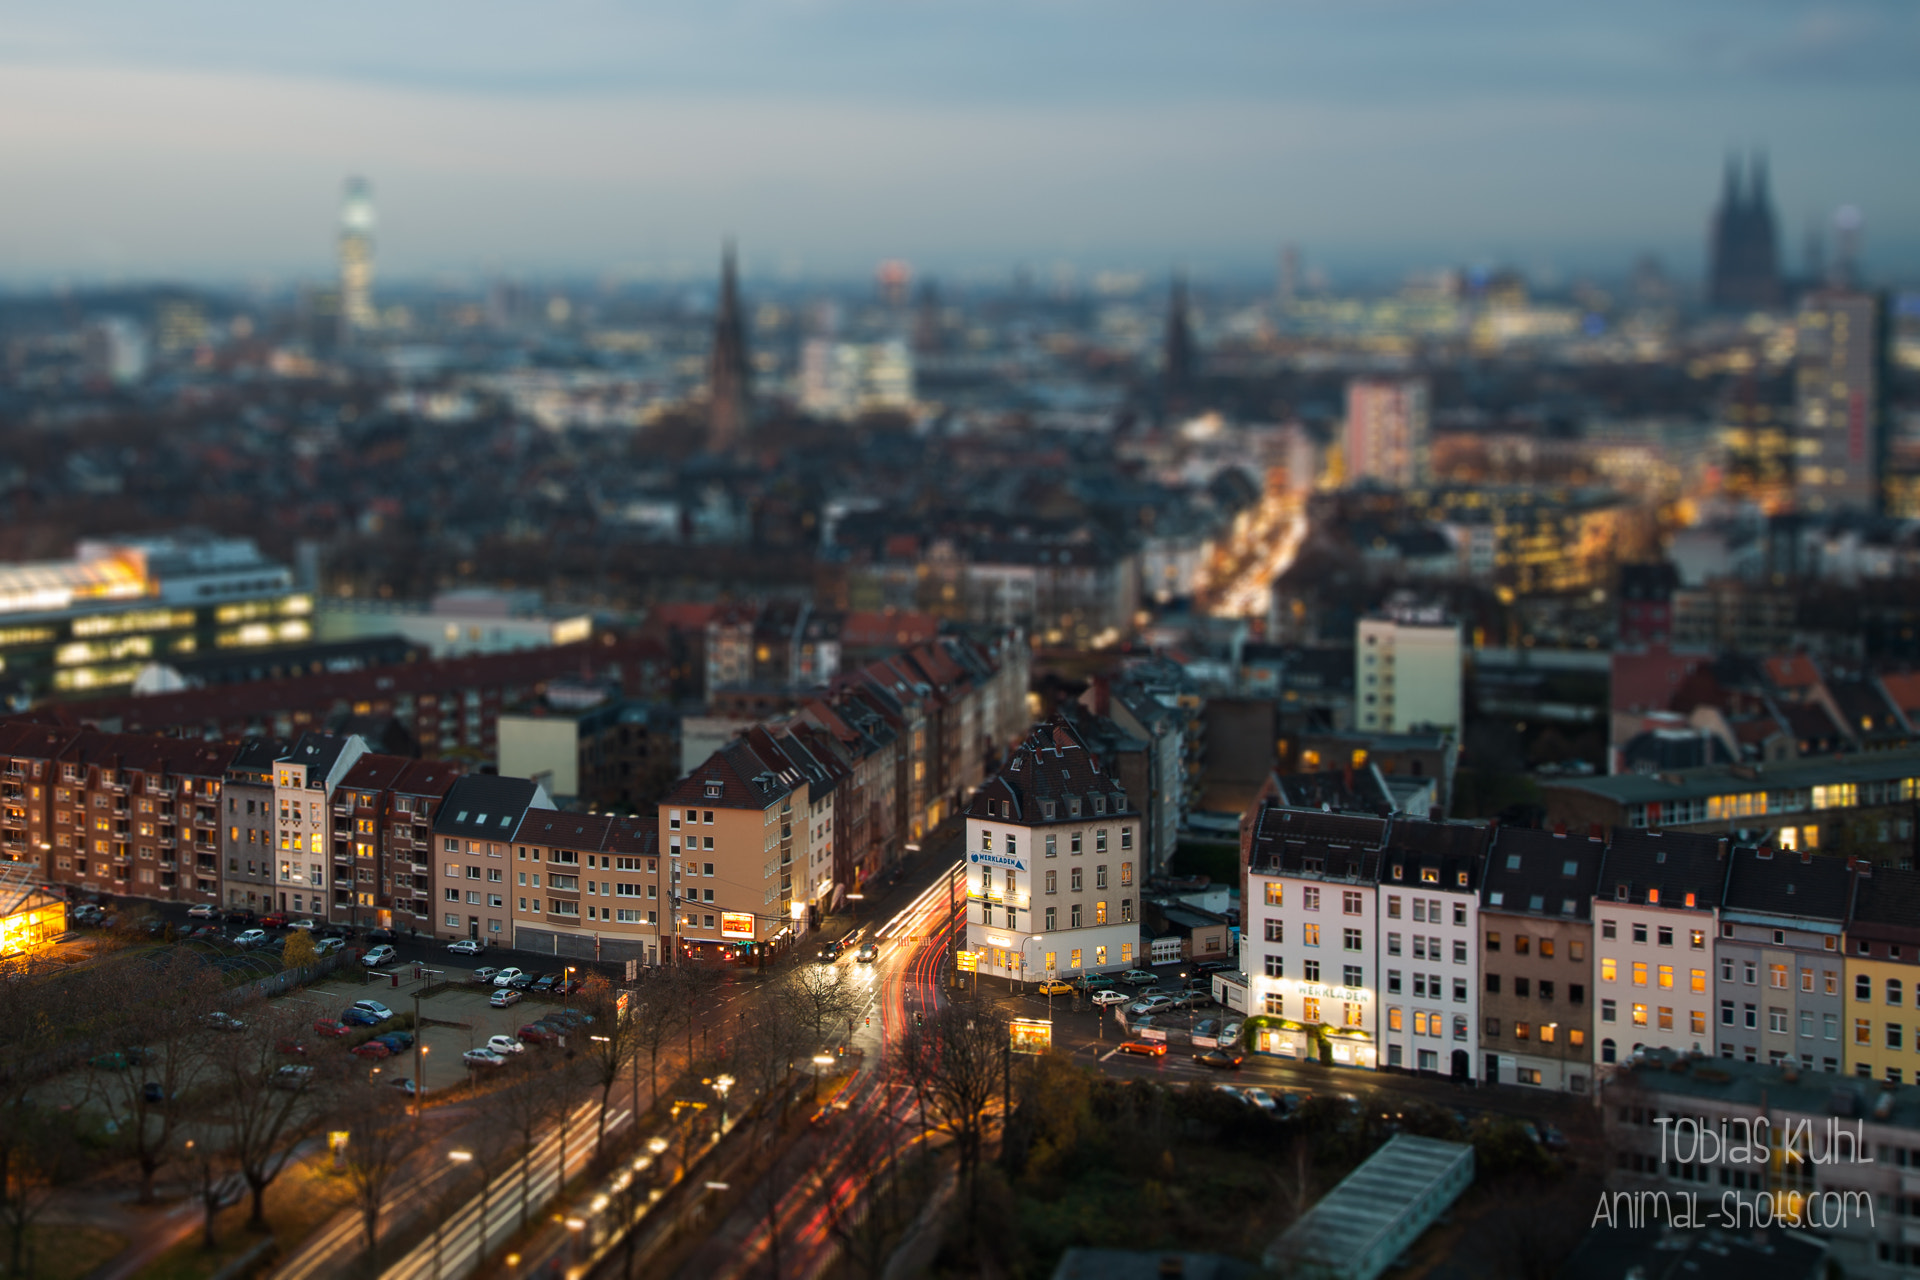 Photograph Toy Cologne by Tobias Kuhl on 500px